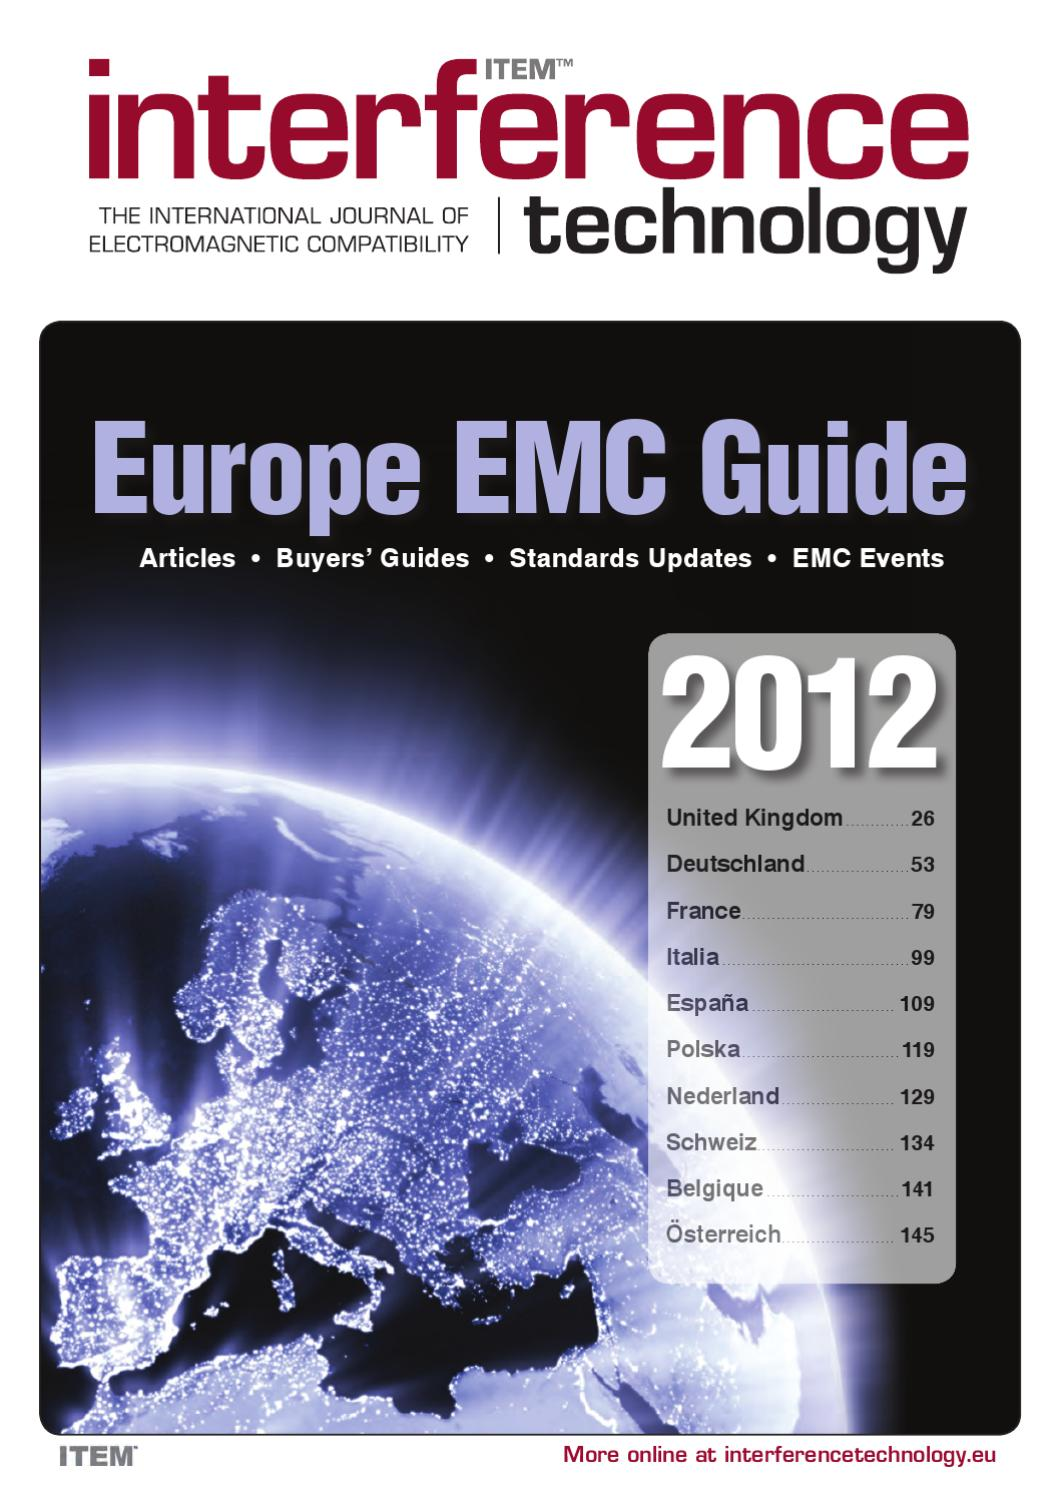 2012 Europe EMC Guide by ITEM Media - issuu